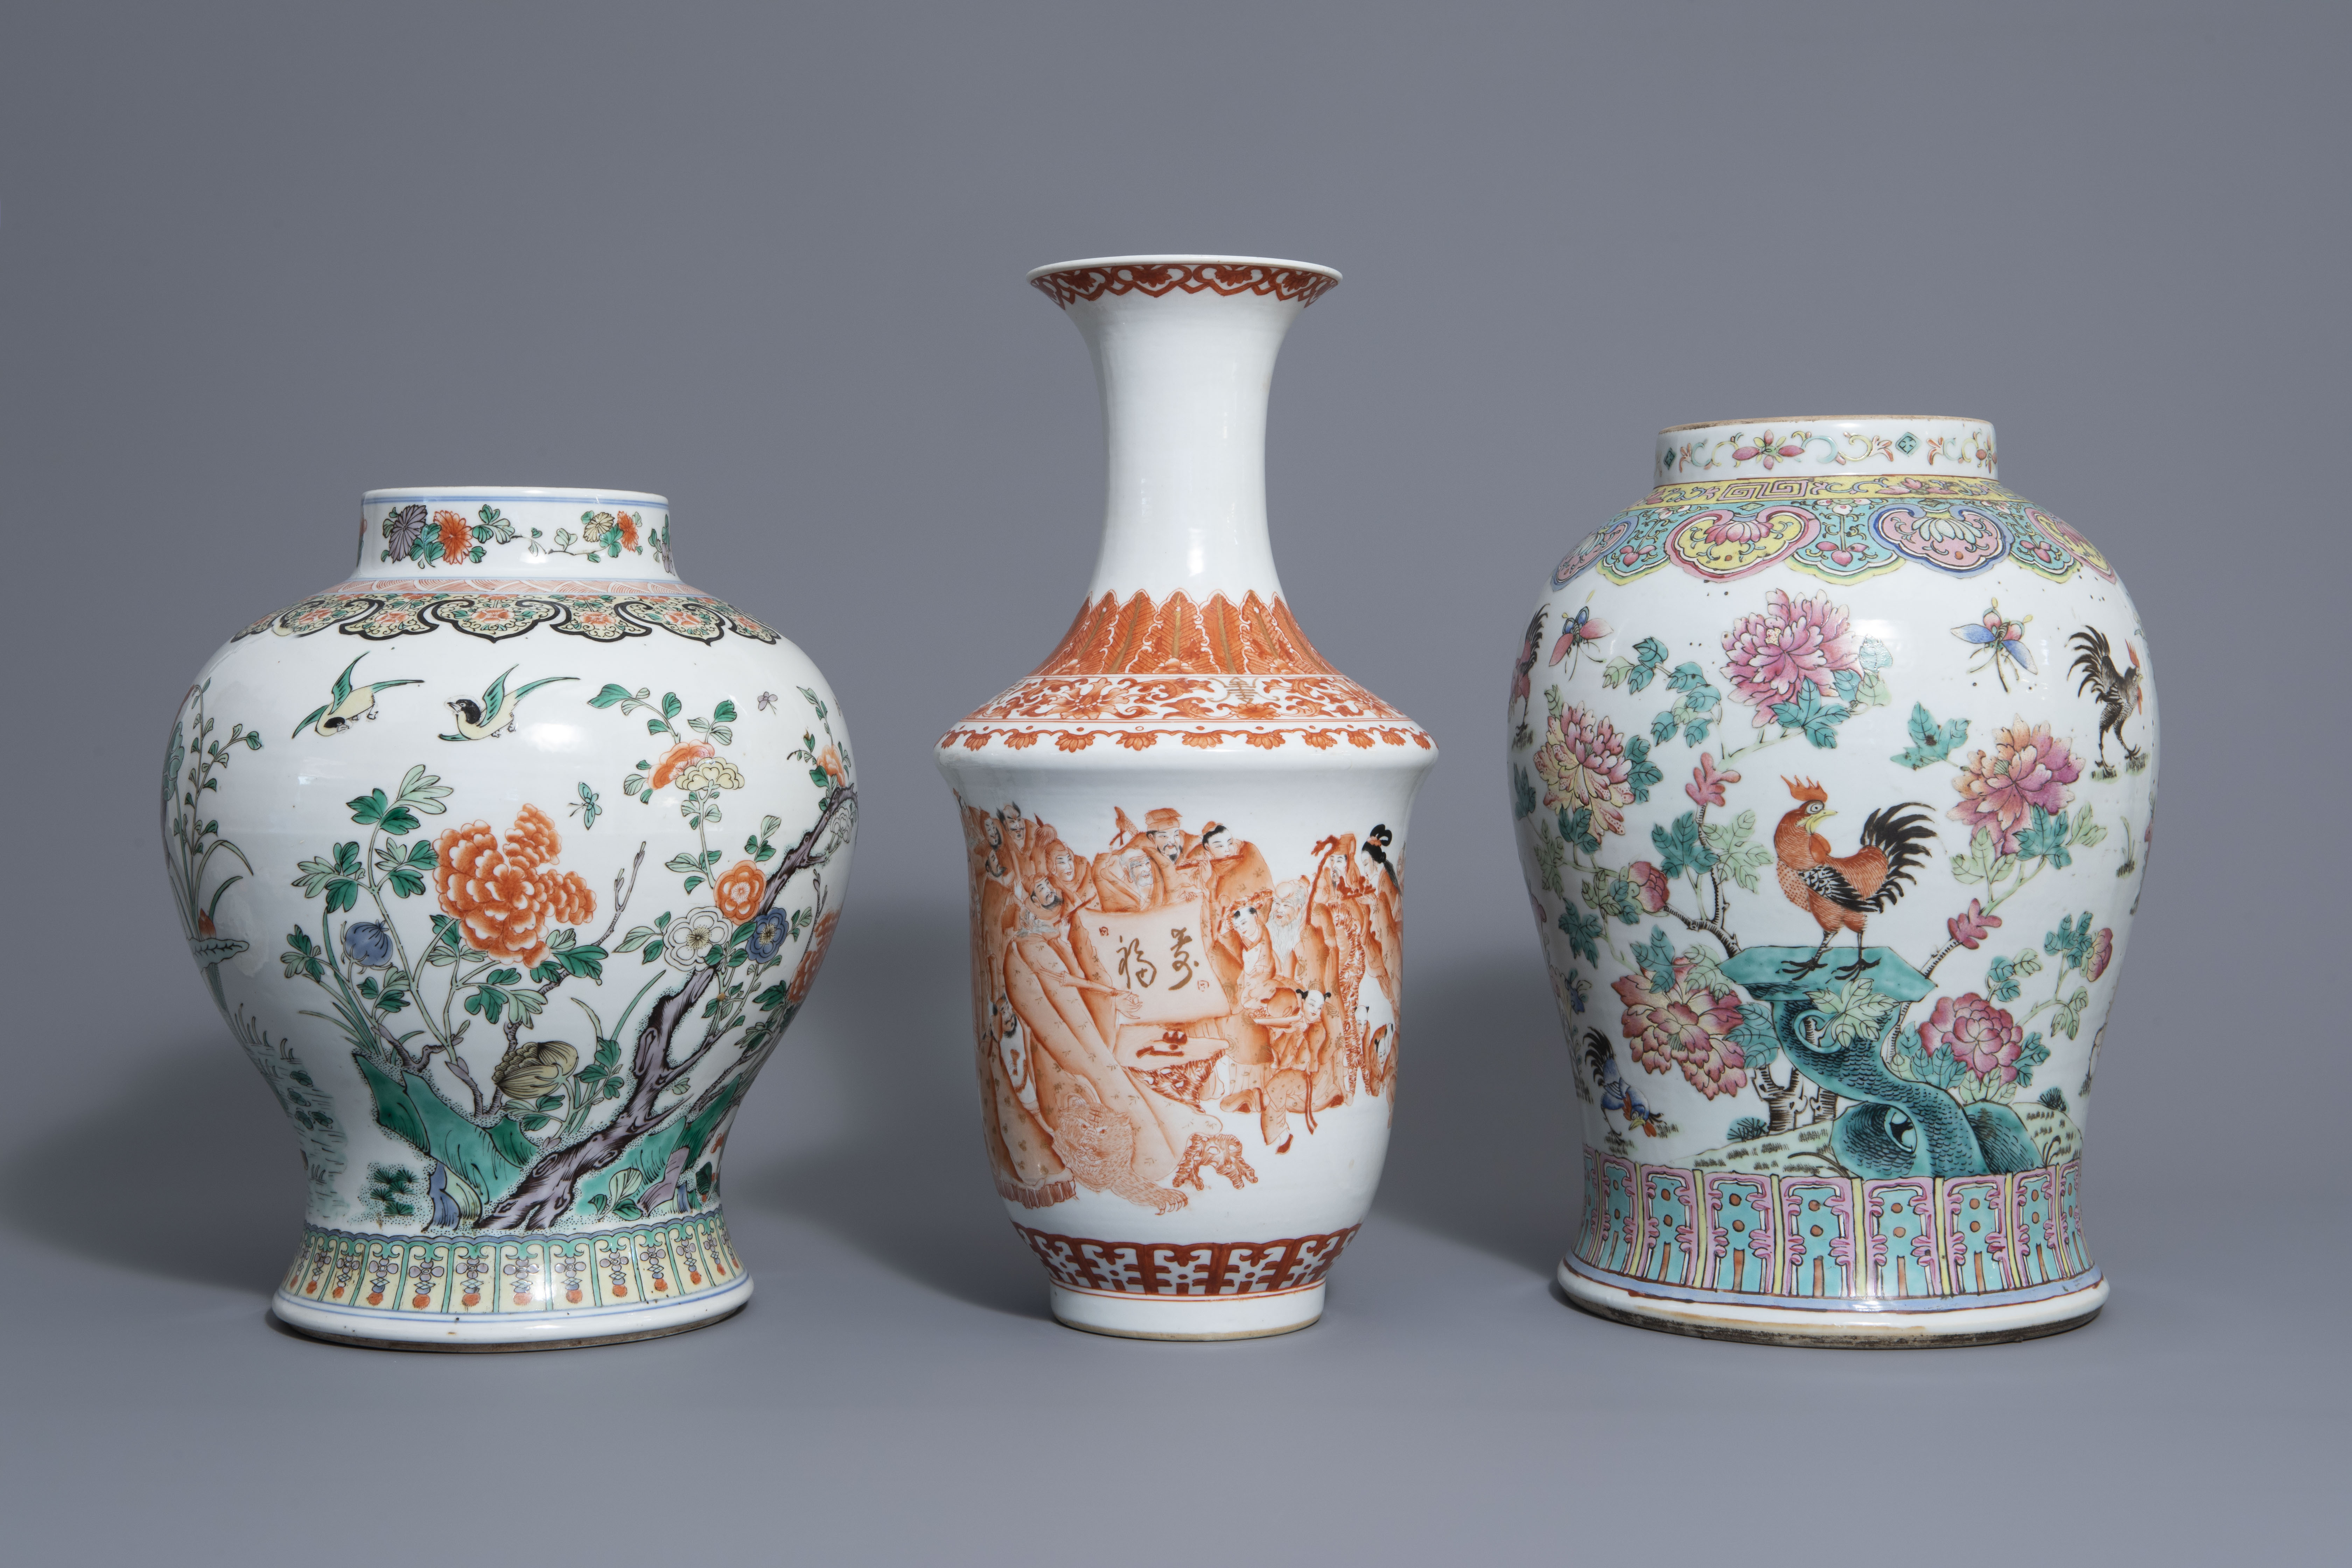 Three Chinese famille rose, verte and iron red vases with different designs, 19th/20th C. - Image 2 of 7